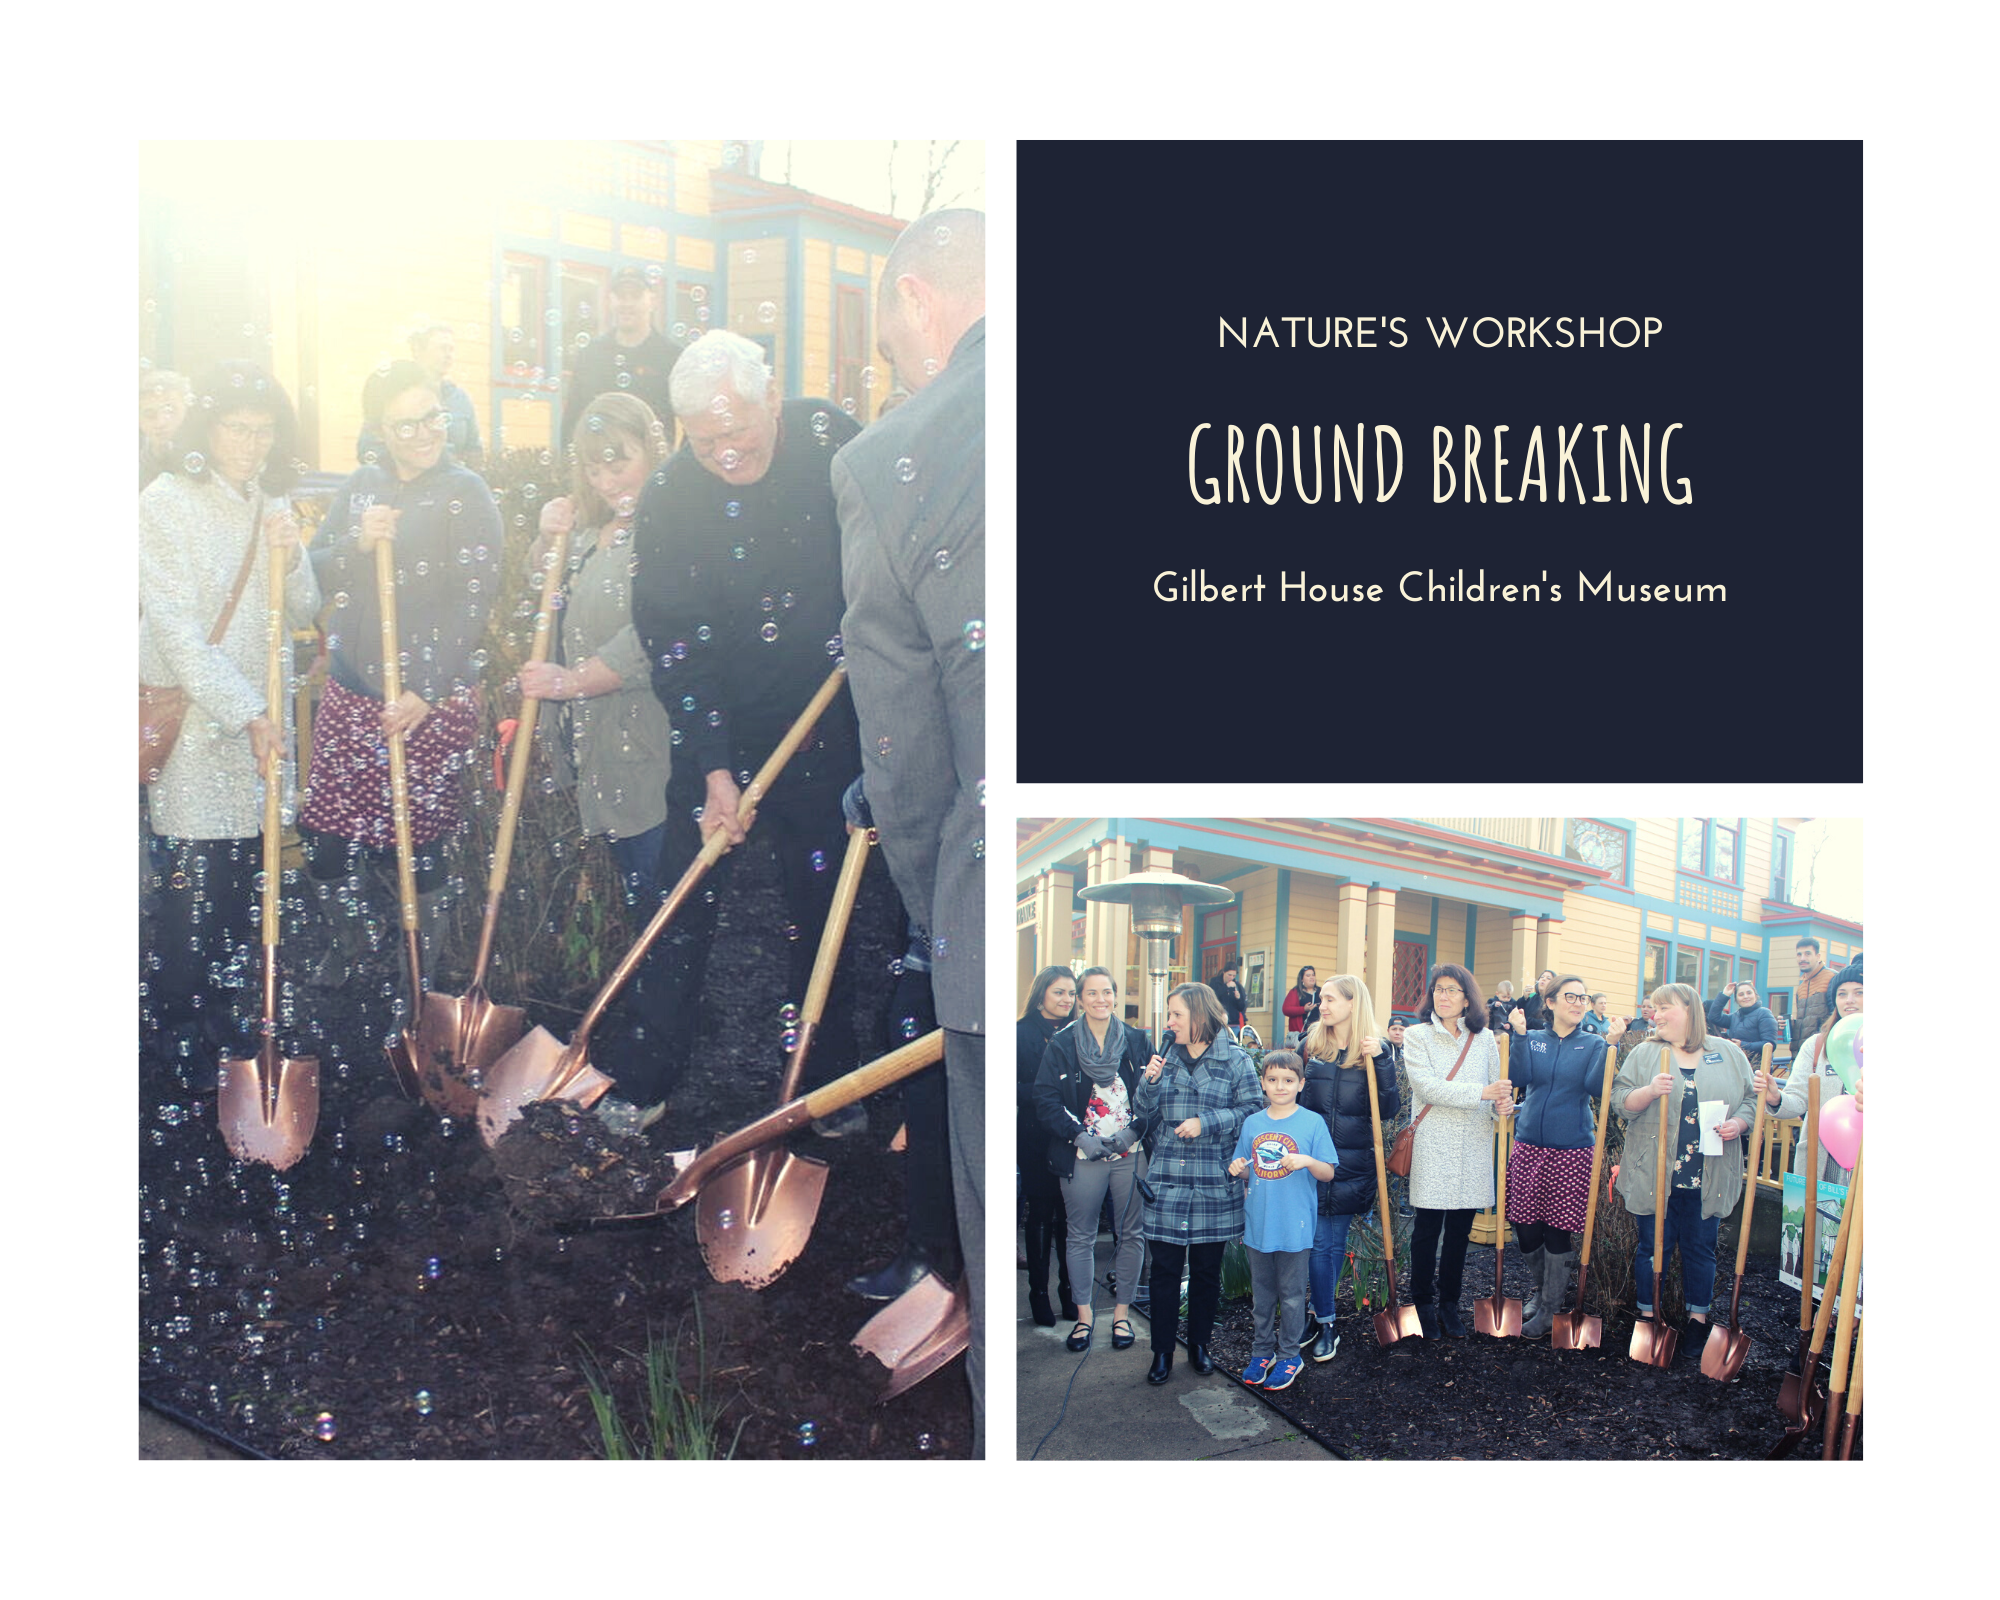 Nature's Workshop groundbreaking